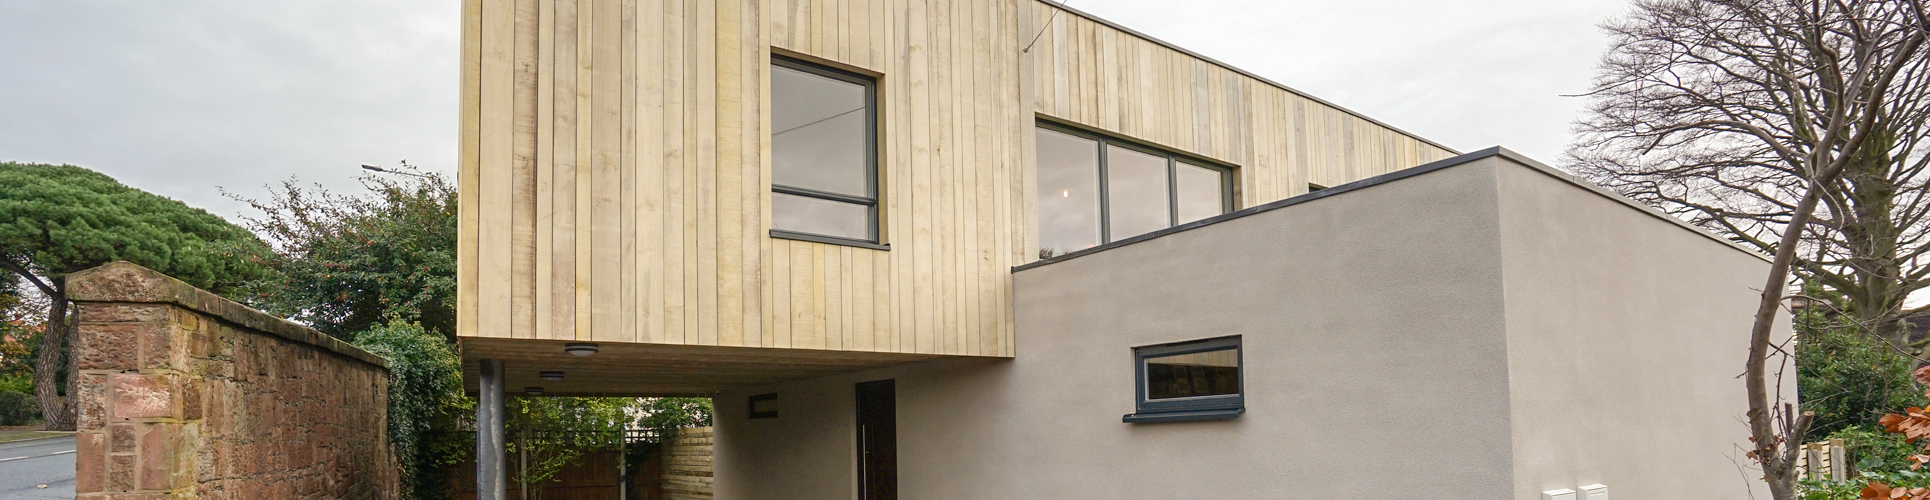 Timber Box Development, Grand Designs Wirral